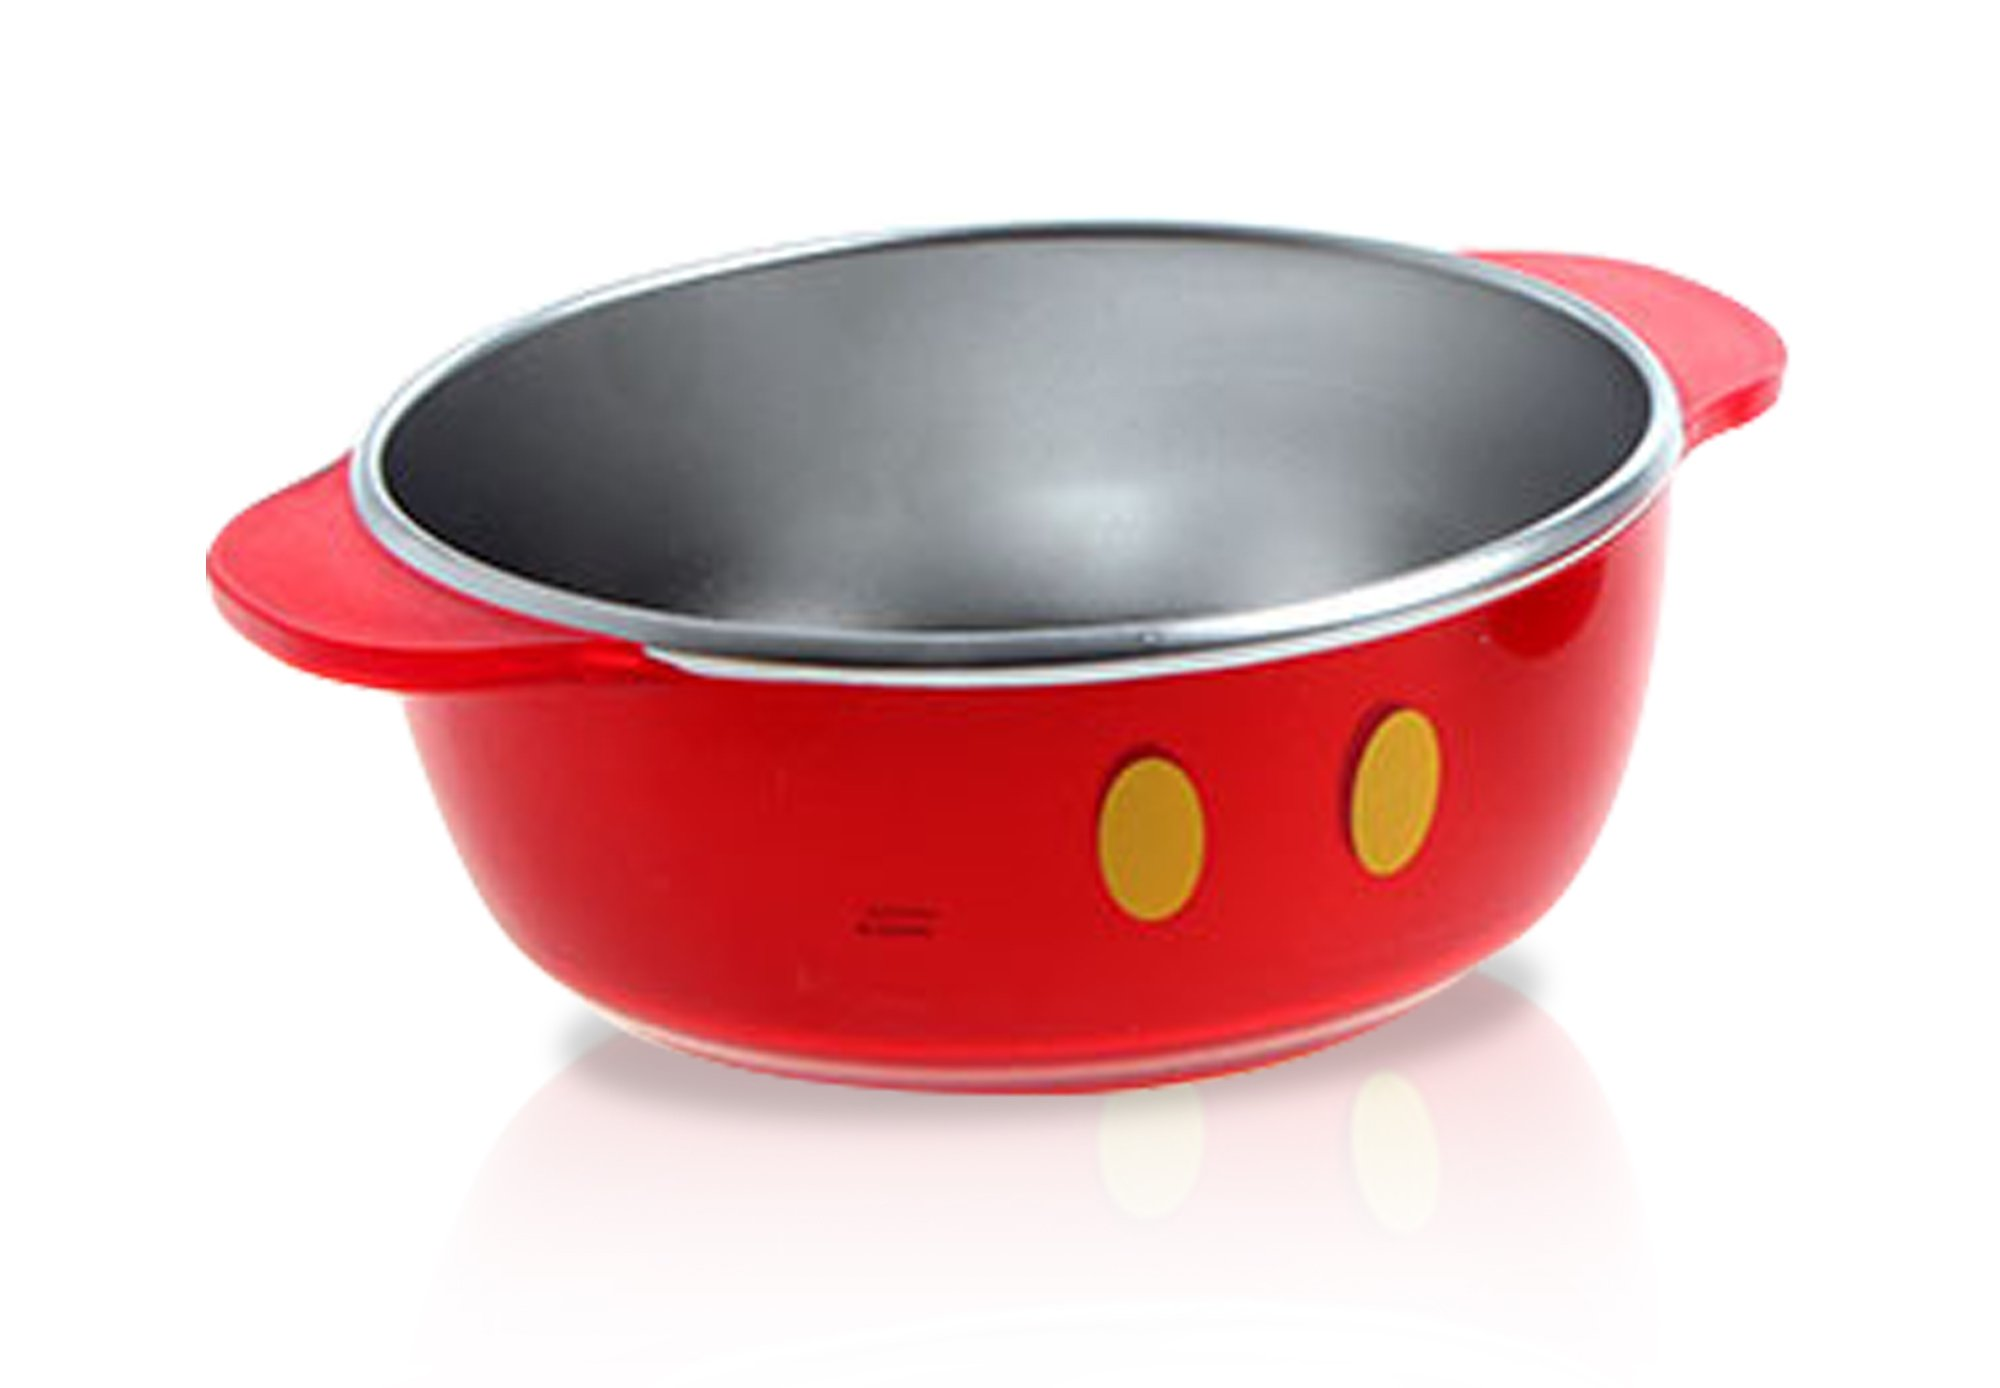 Finex - Made in Korea - Red Mickey Mouse Non-slip Stainless Steel Bowl for kids (Large)